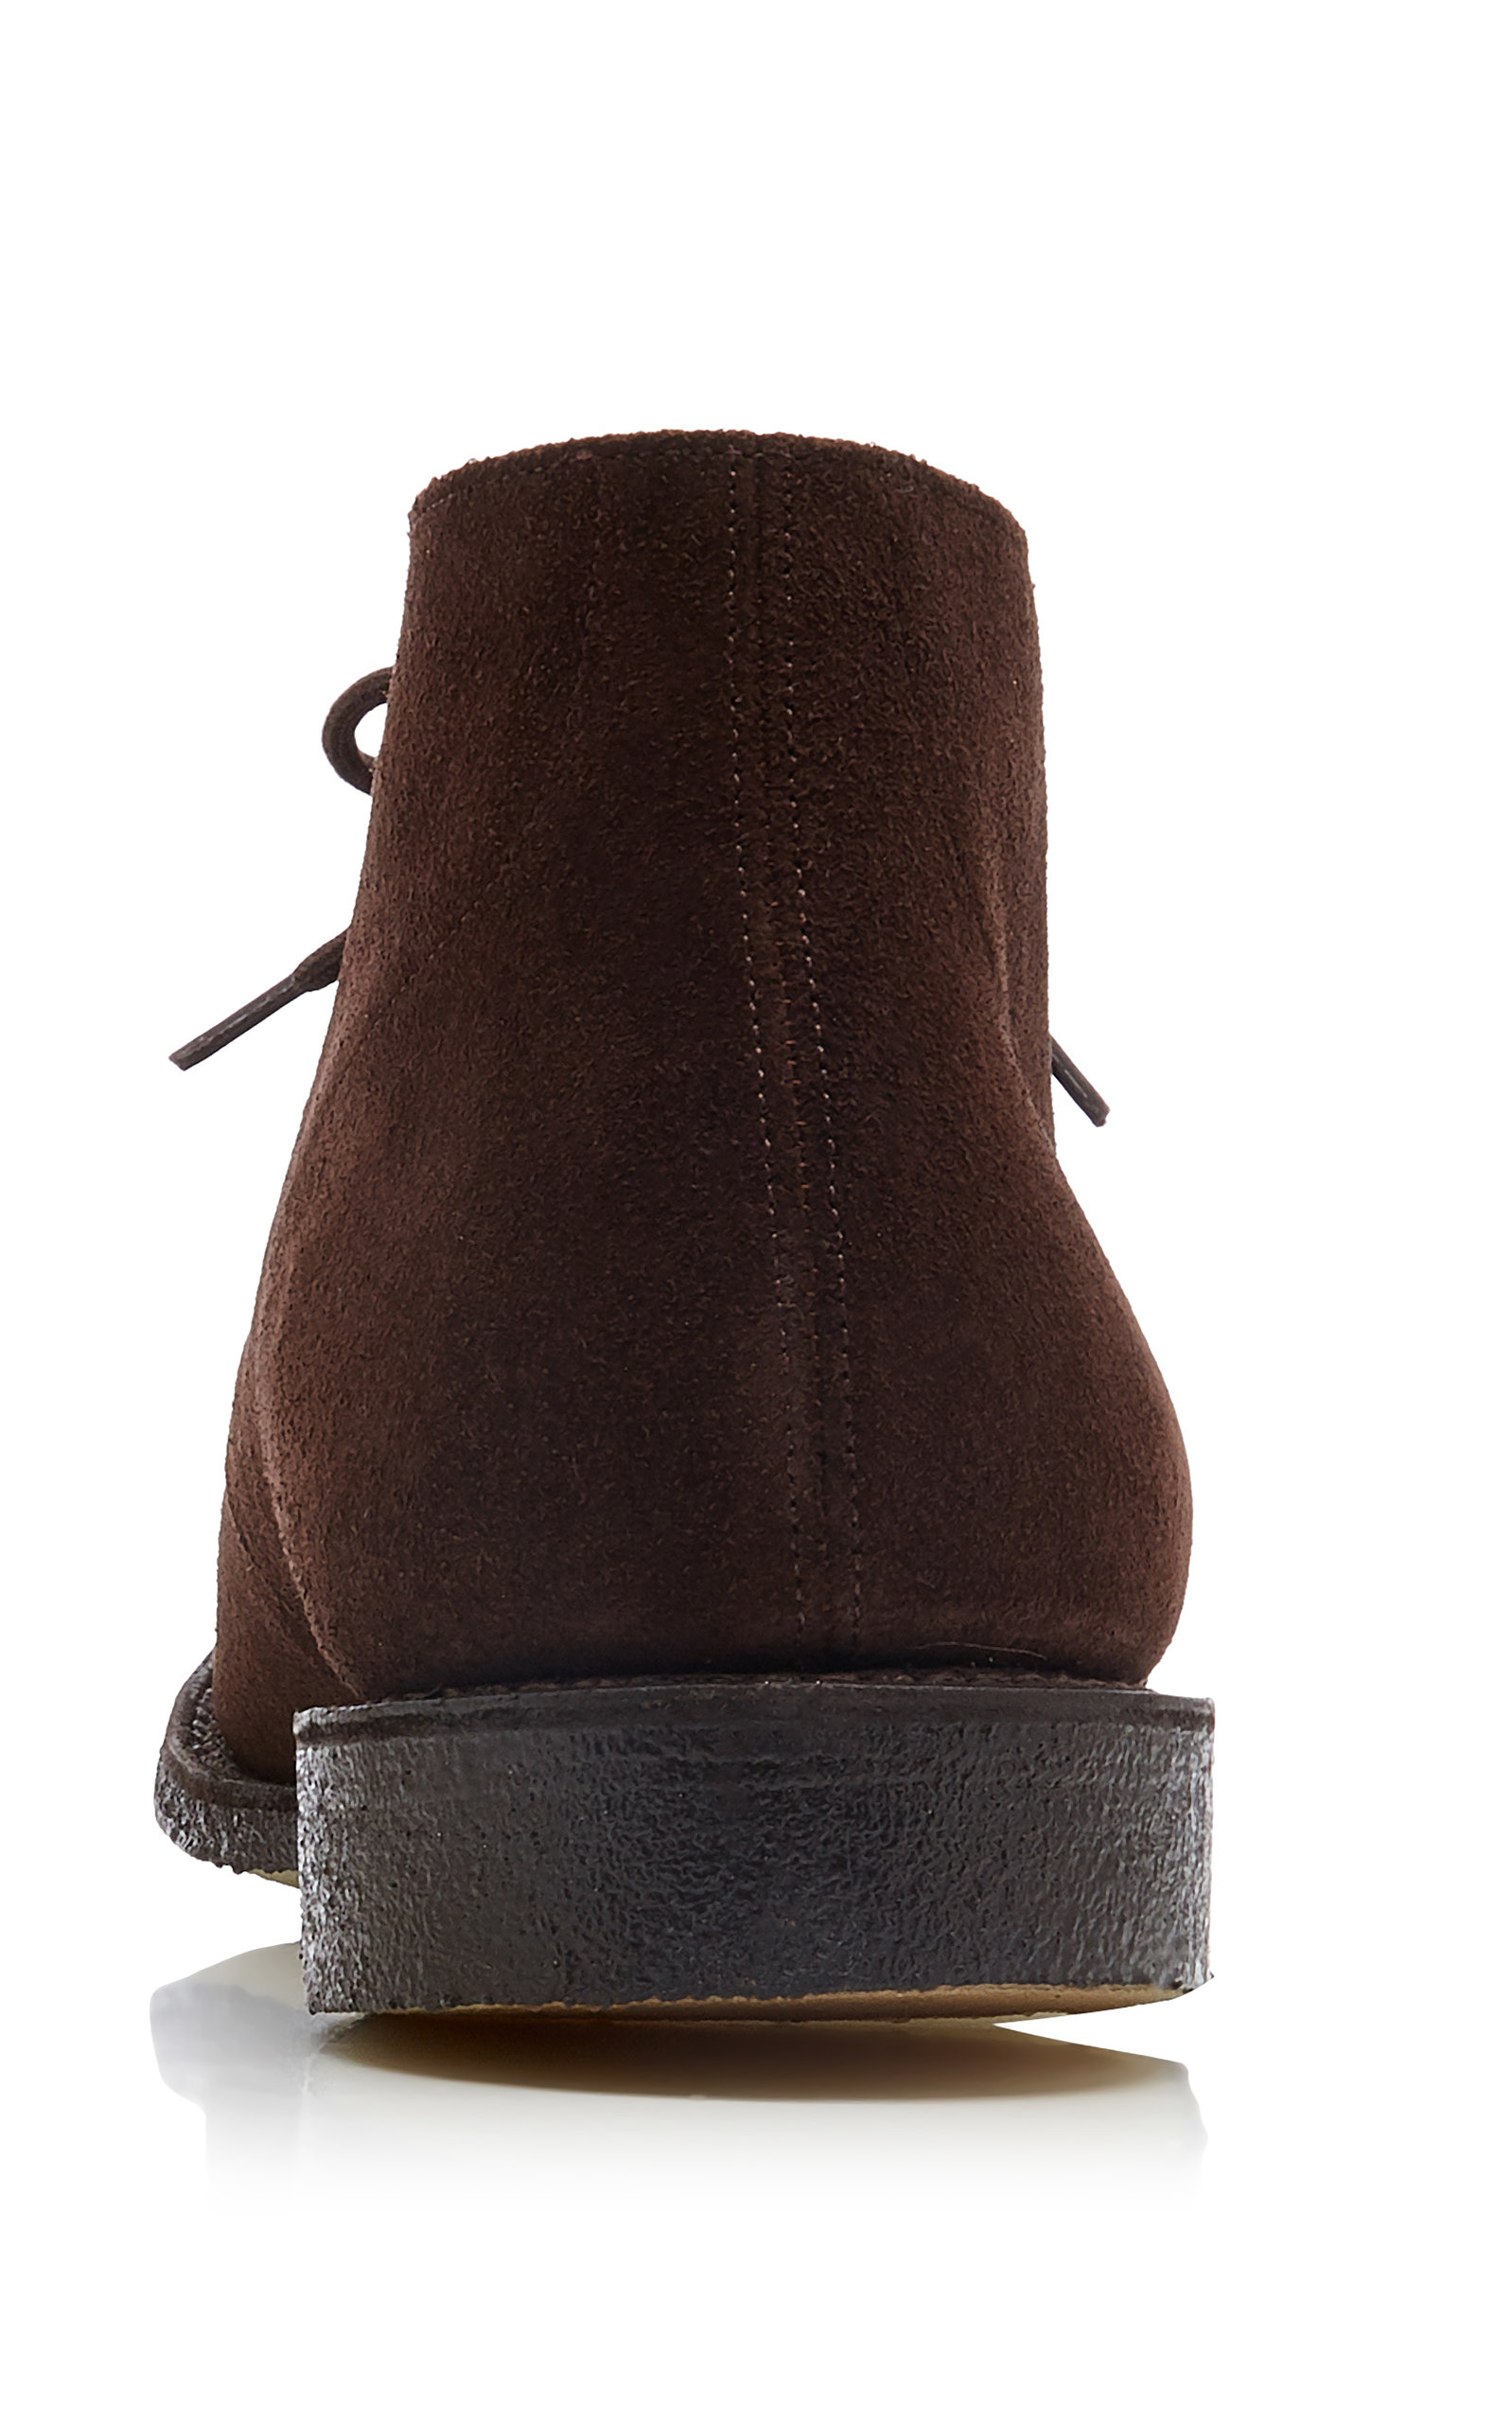 a42225a5 Church'sSahara Suede Desert Boots. CLOSE. Loading. Loading. Loading. Loading